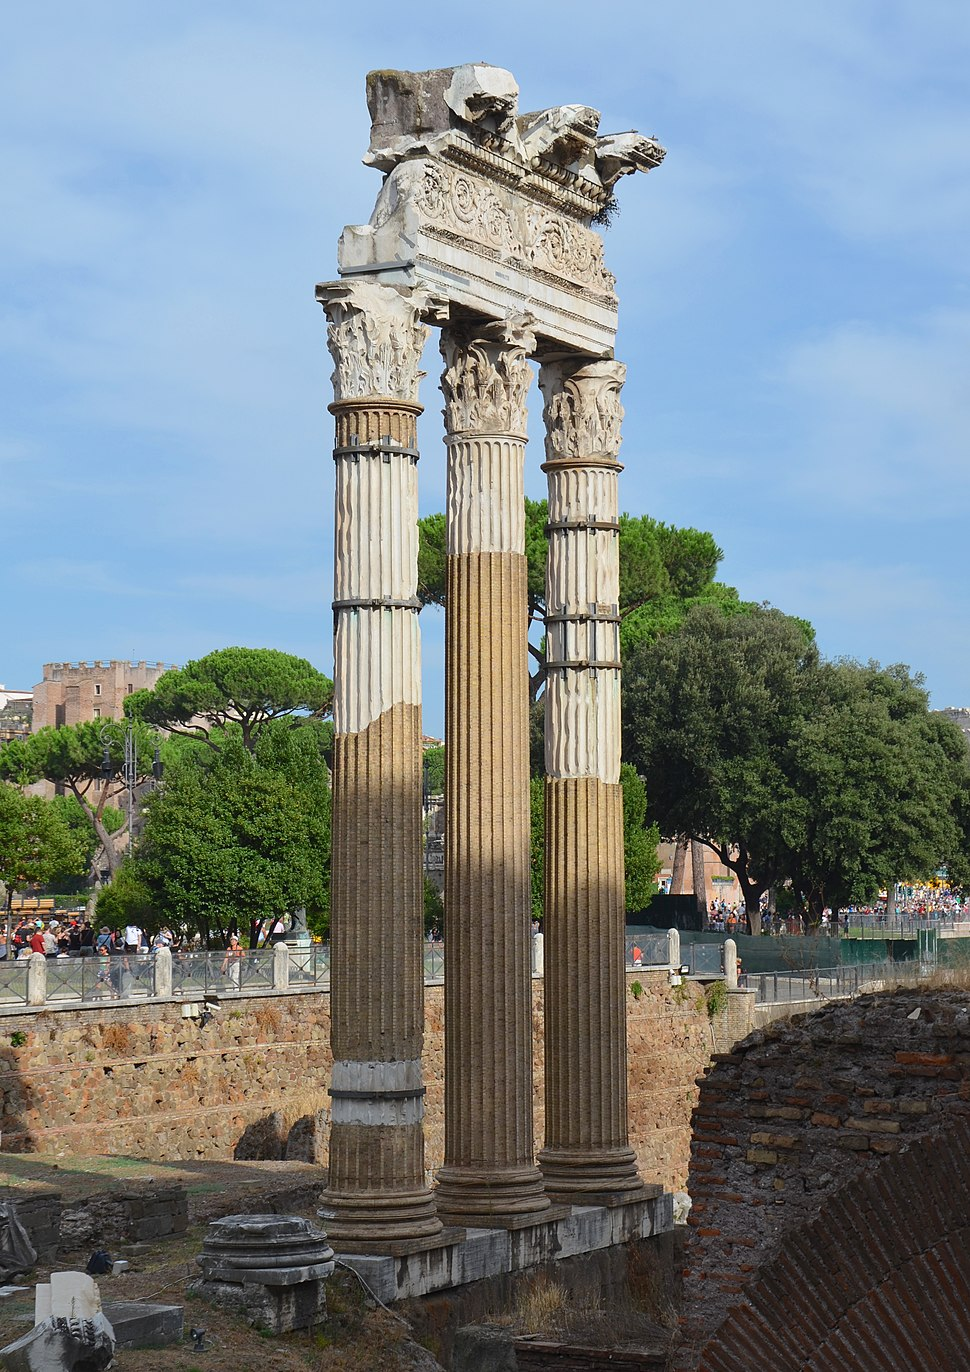 The Forum of Caesar (built near the Forum Romanum in Rome in 46 BC) and the Temple of Venus Genetrix, Imperial Forums, Rome (21101482544)